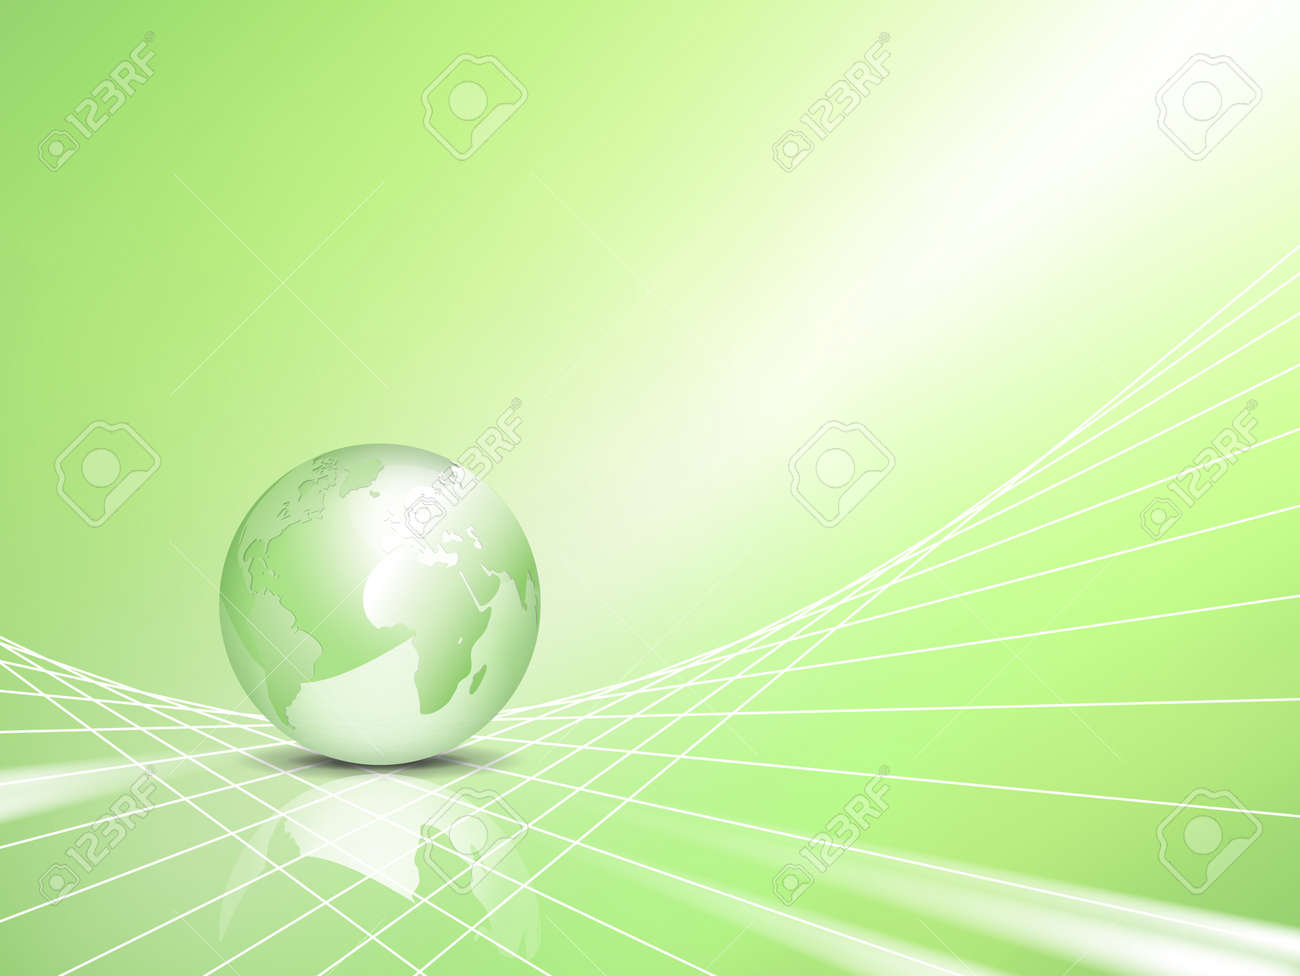 Light green eco business background with abstract 3d vector globe, world map - symbol of environmental protection - ecology and green energy concept Stock Vector - 9716622